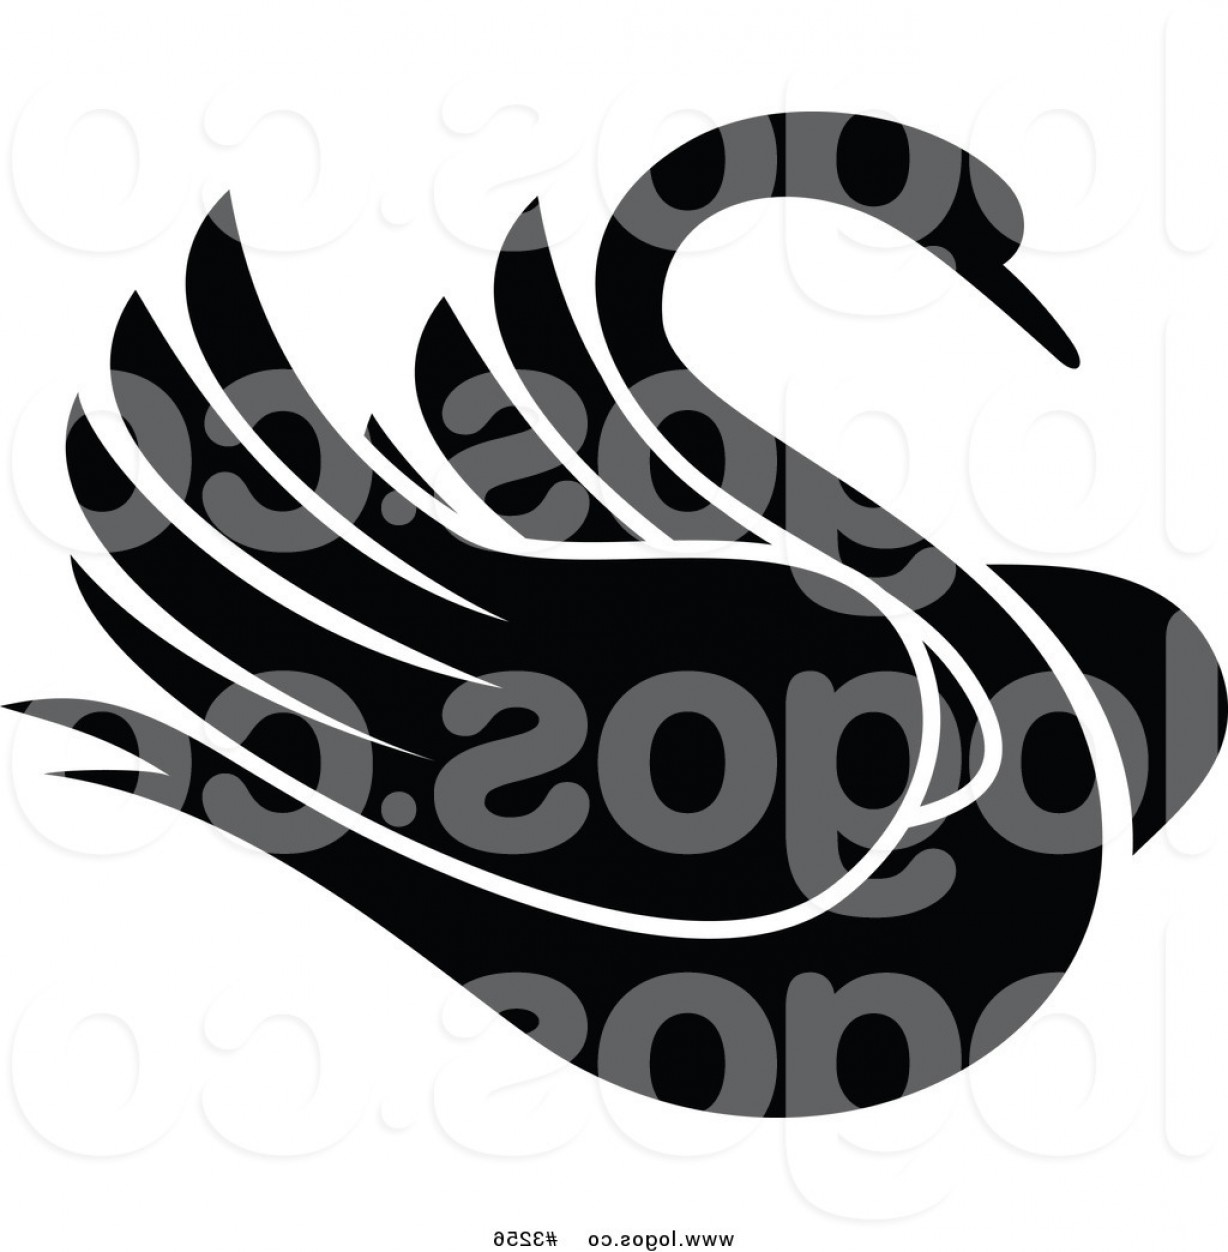 Black And White Bird Free Vector Graphics: Royalty Free Vector Of A Black And White Swan Bird Logo By Vector Tradition Sm